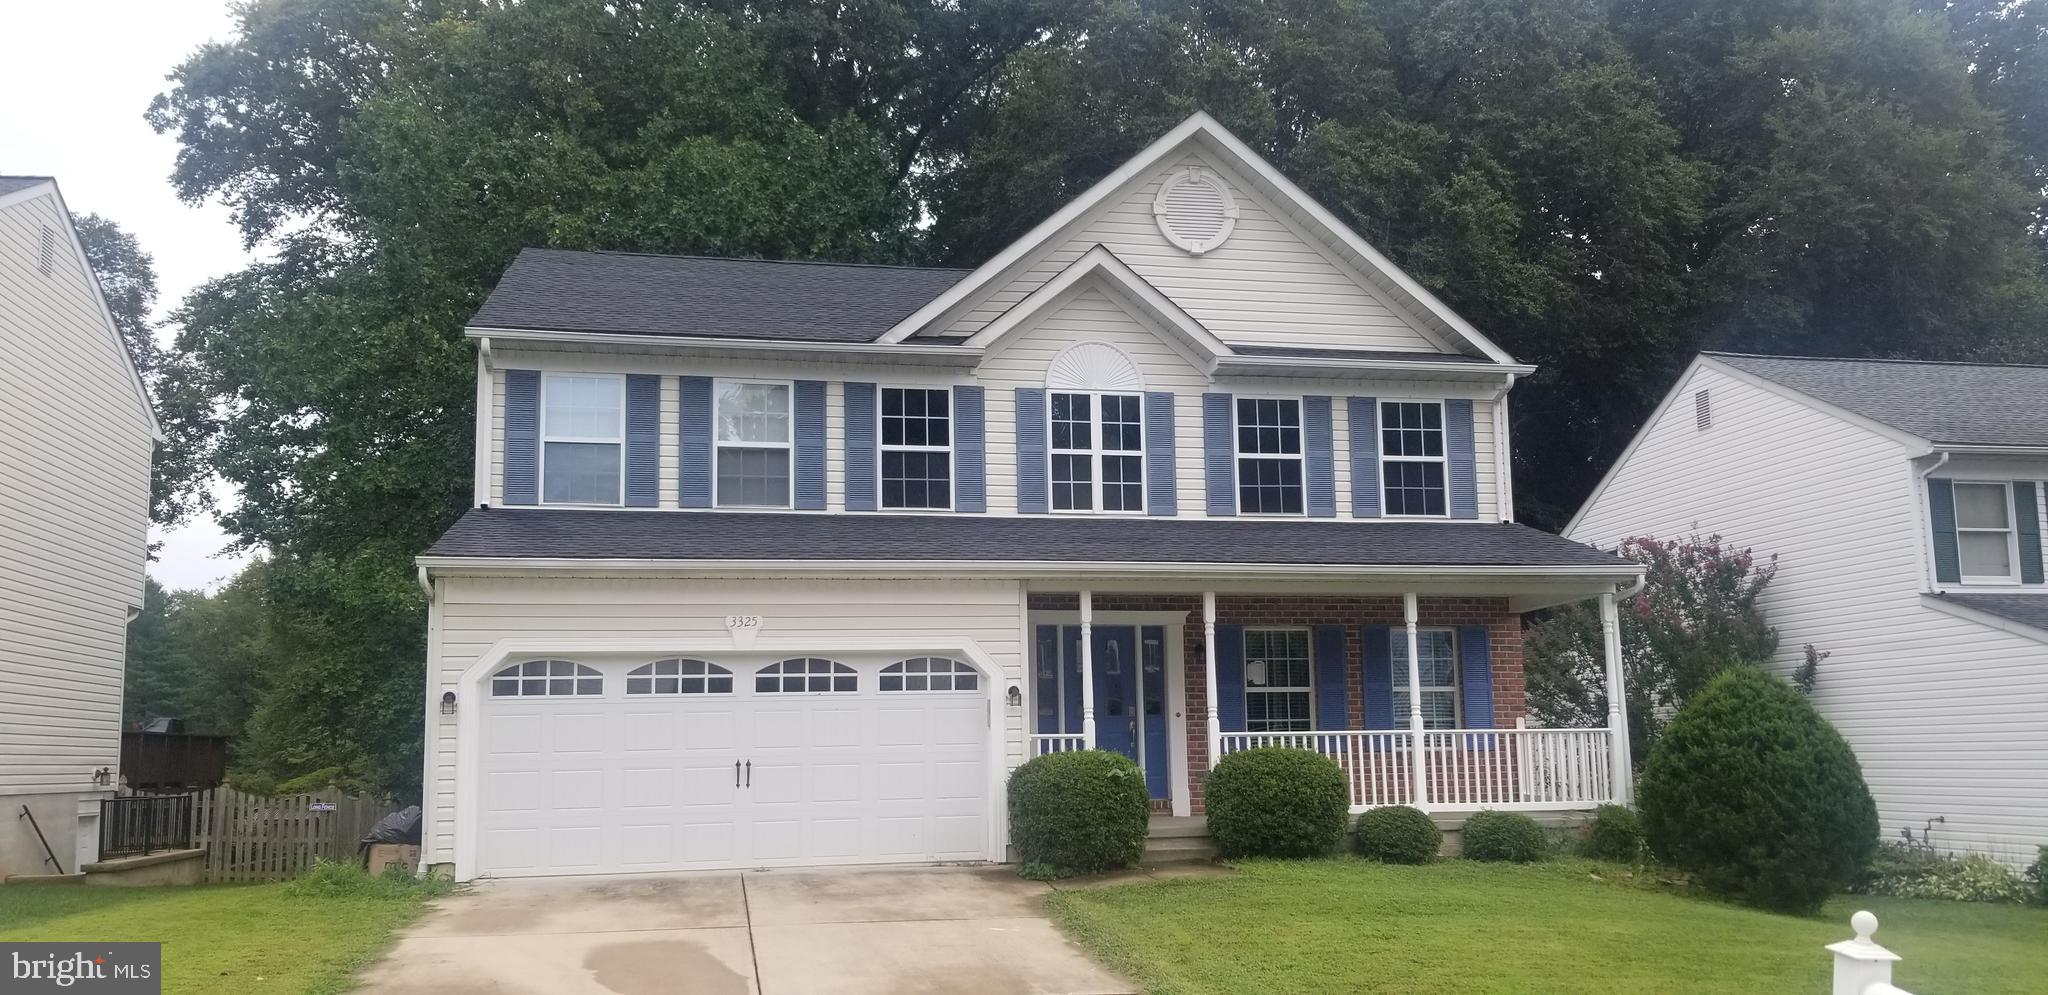 4 BED 2.5 BATH COLONIAL WITH UPDATED KITCHEN,  GRANITE COUNTERS AND STAINLESS APPLIANCES, NEW MASTER